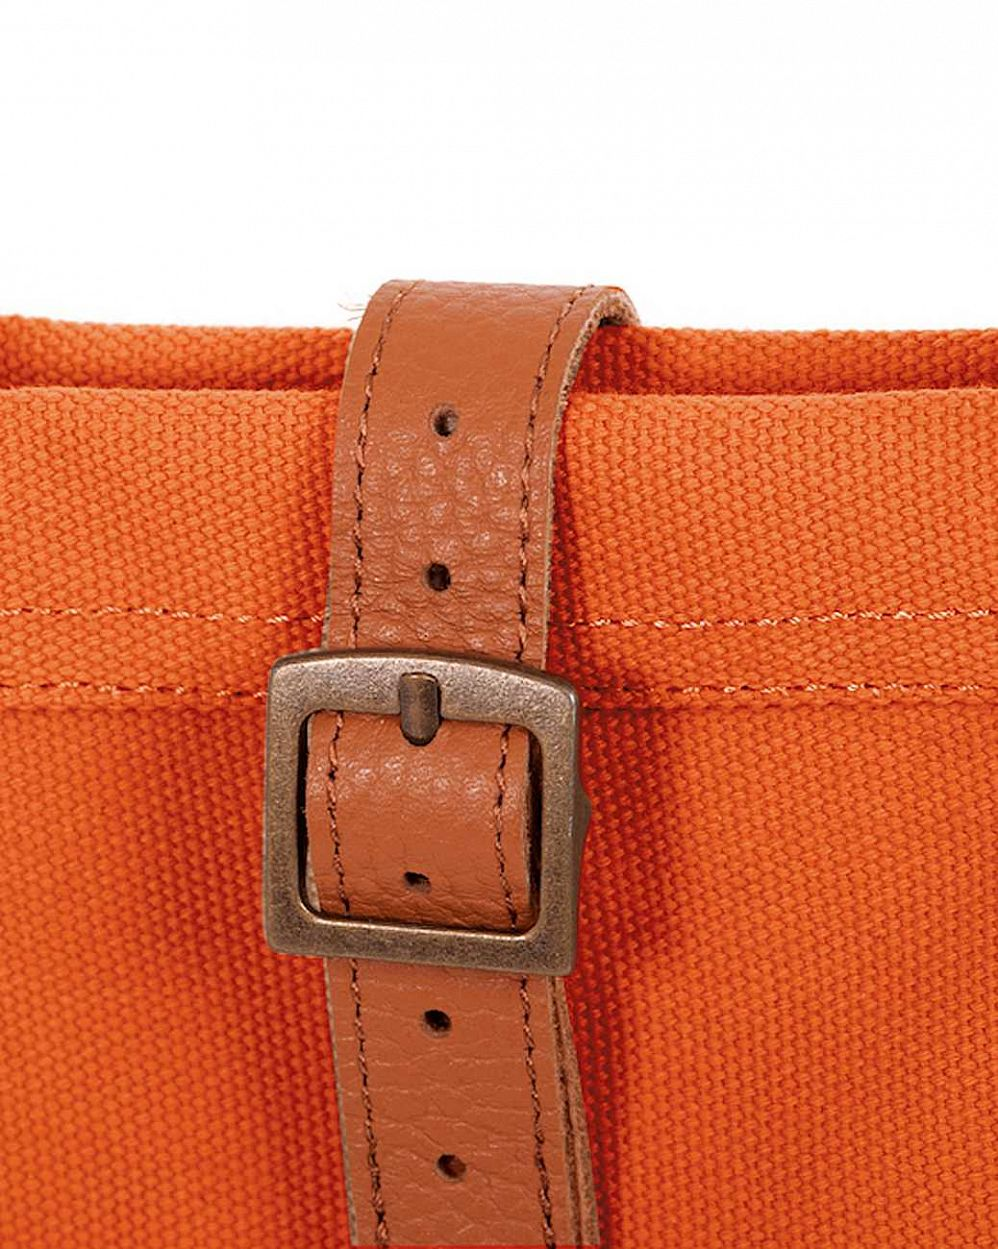 Сумка Herschel Market Canvas Burnt Orange цена в Москве